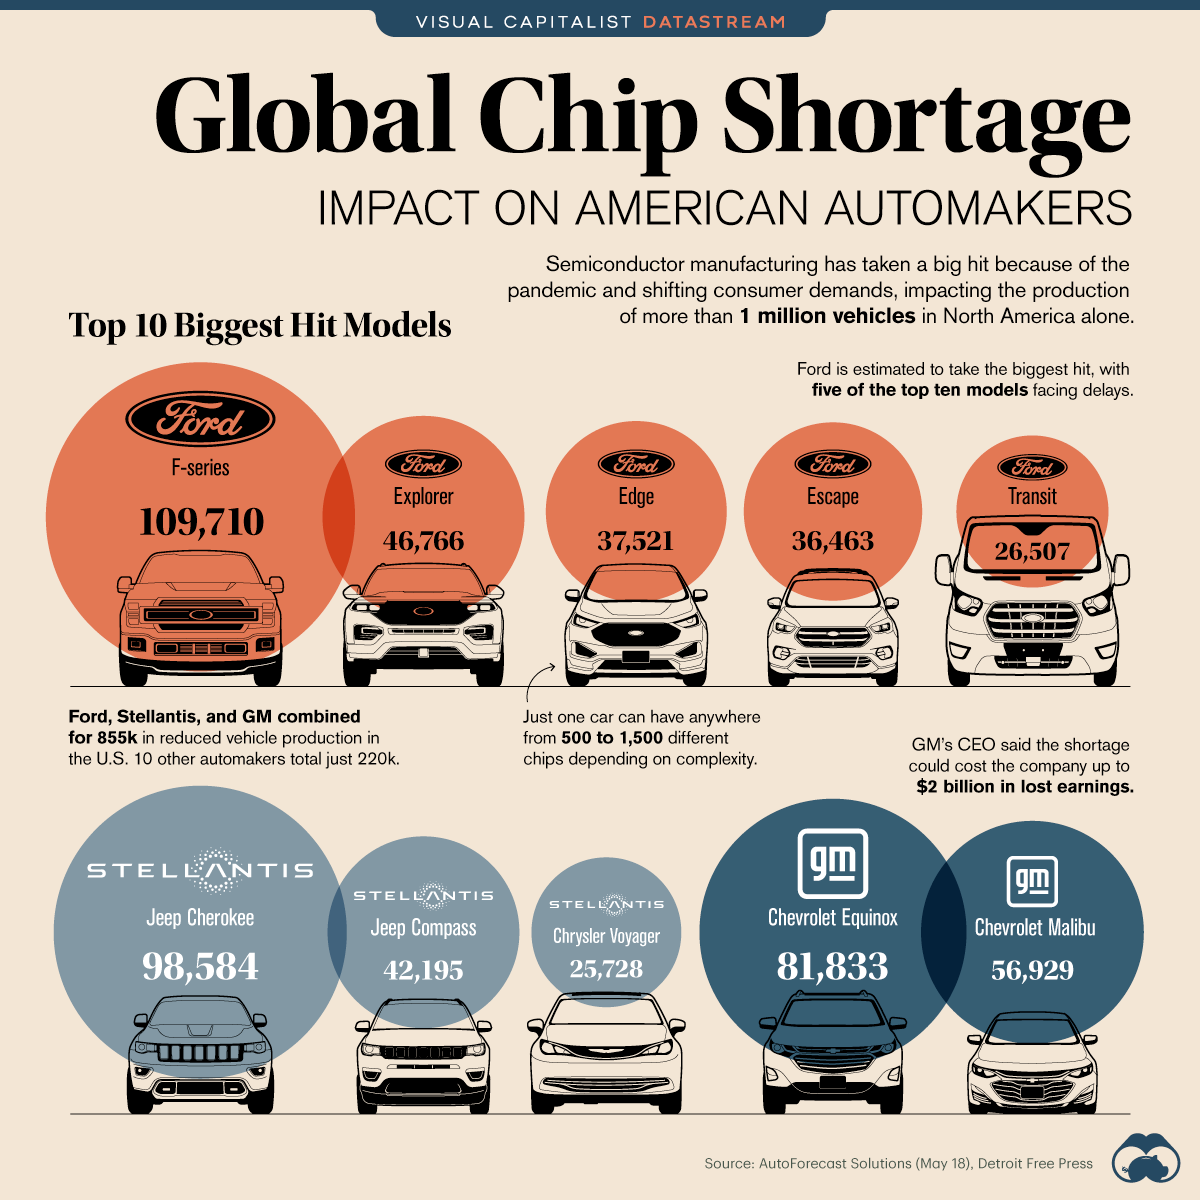 An infographic example showcasing the global chip shortage's impact on American automakers.